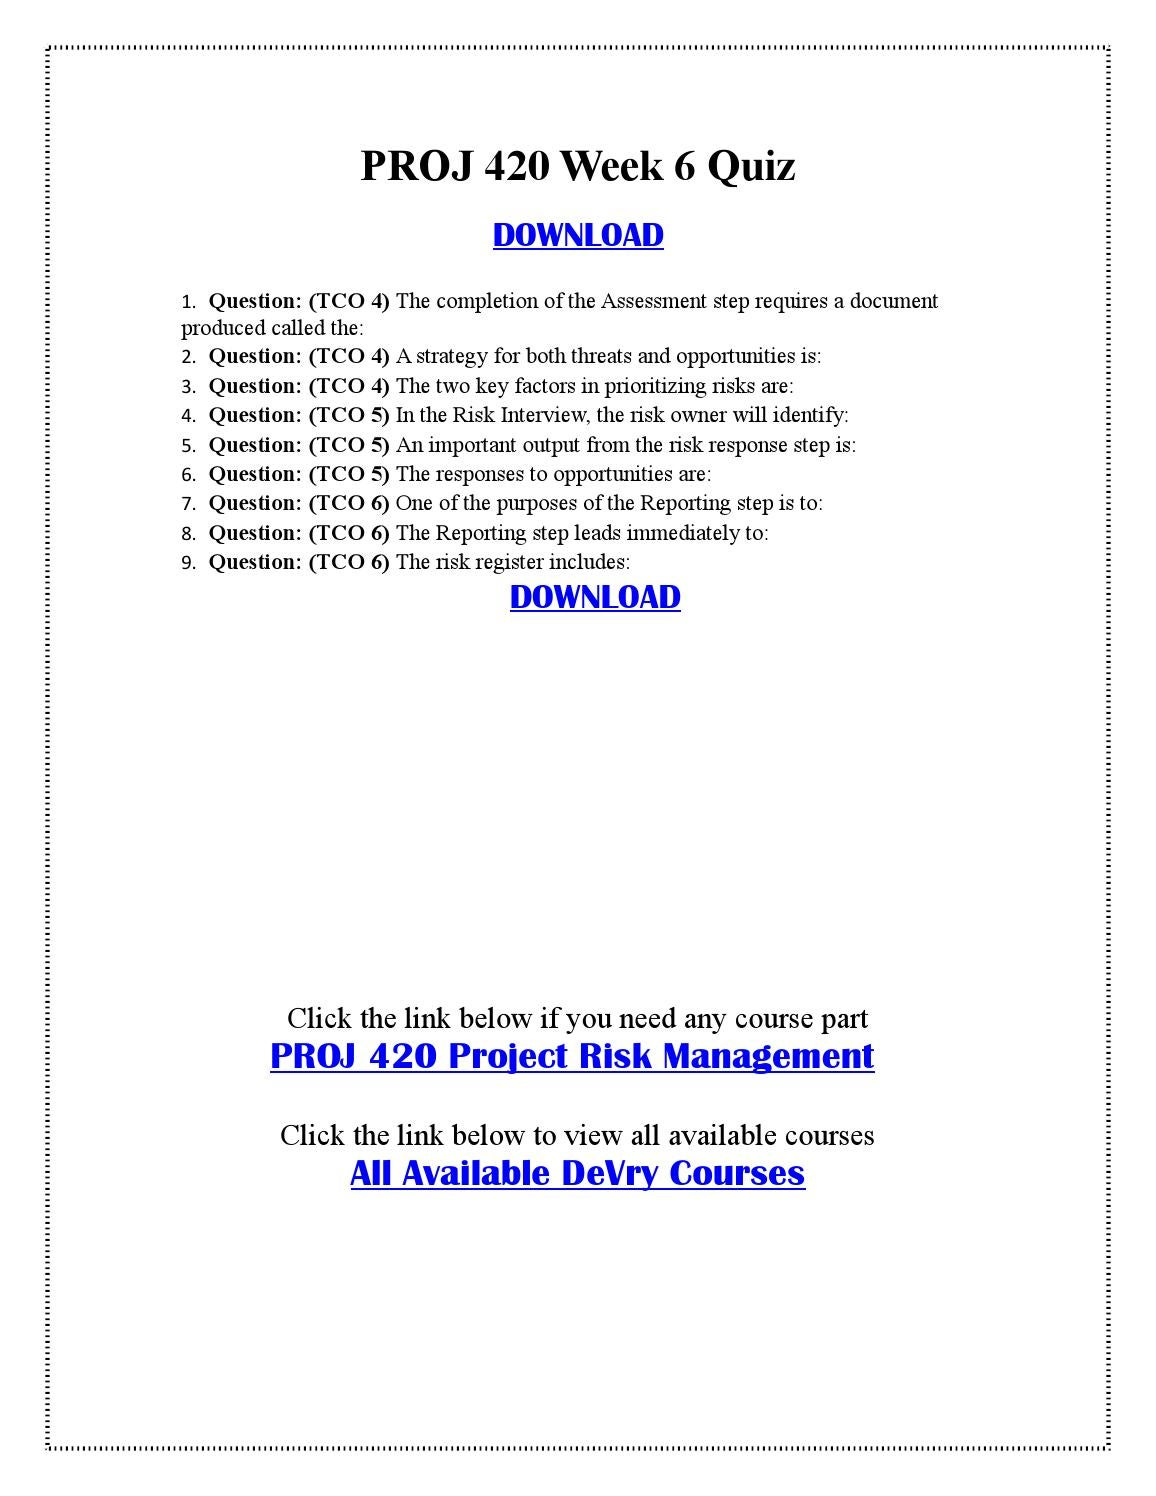 proj 420 summary risk report Bscom 260 week 4 final project organizing for readers $800 rating: a purchased: 4 times.